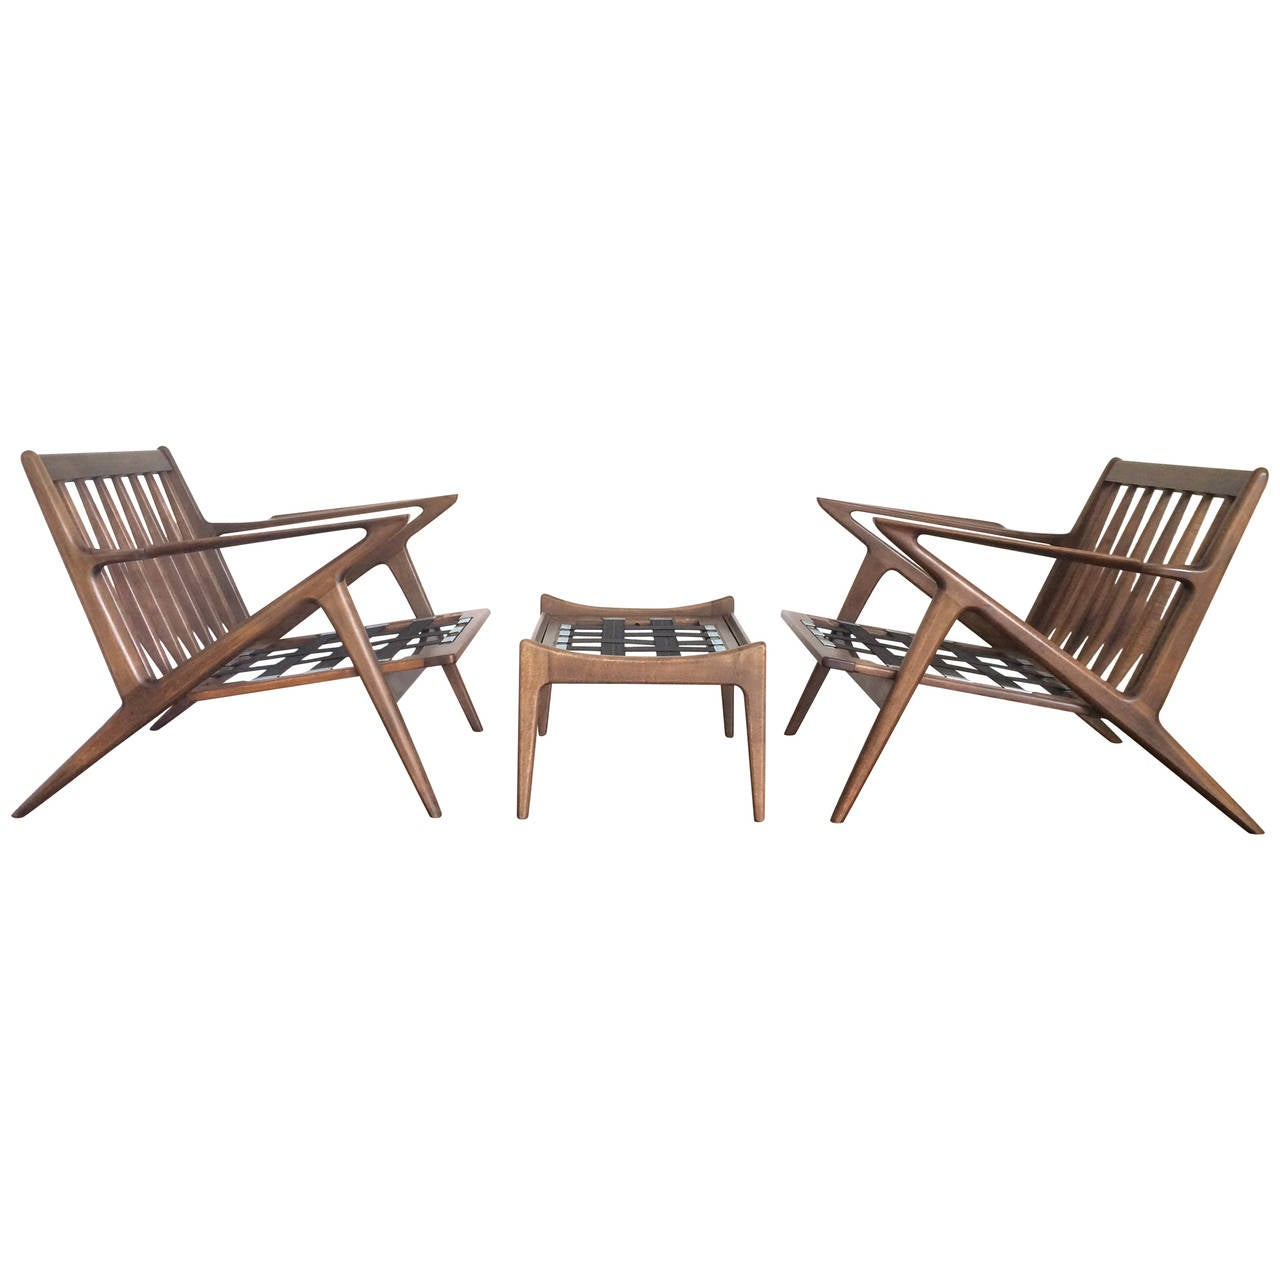 Pair of poul jensen z lounge chairs and ottoman at 1stdibs for Poul jensen z chair